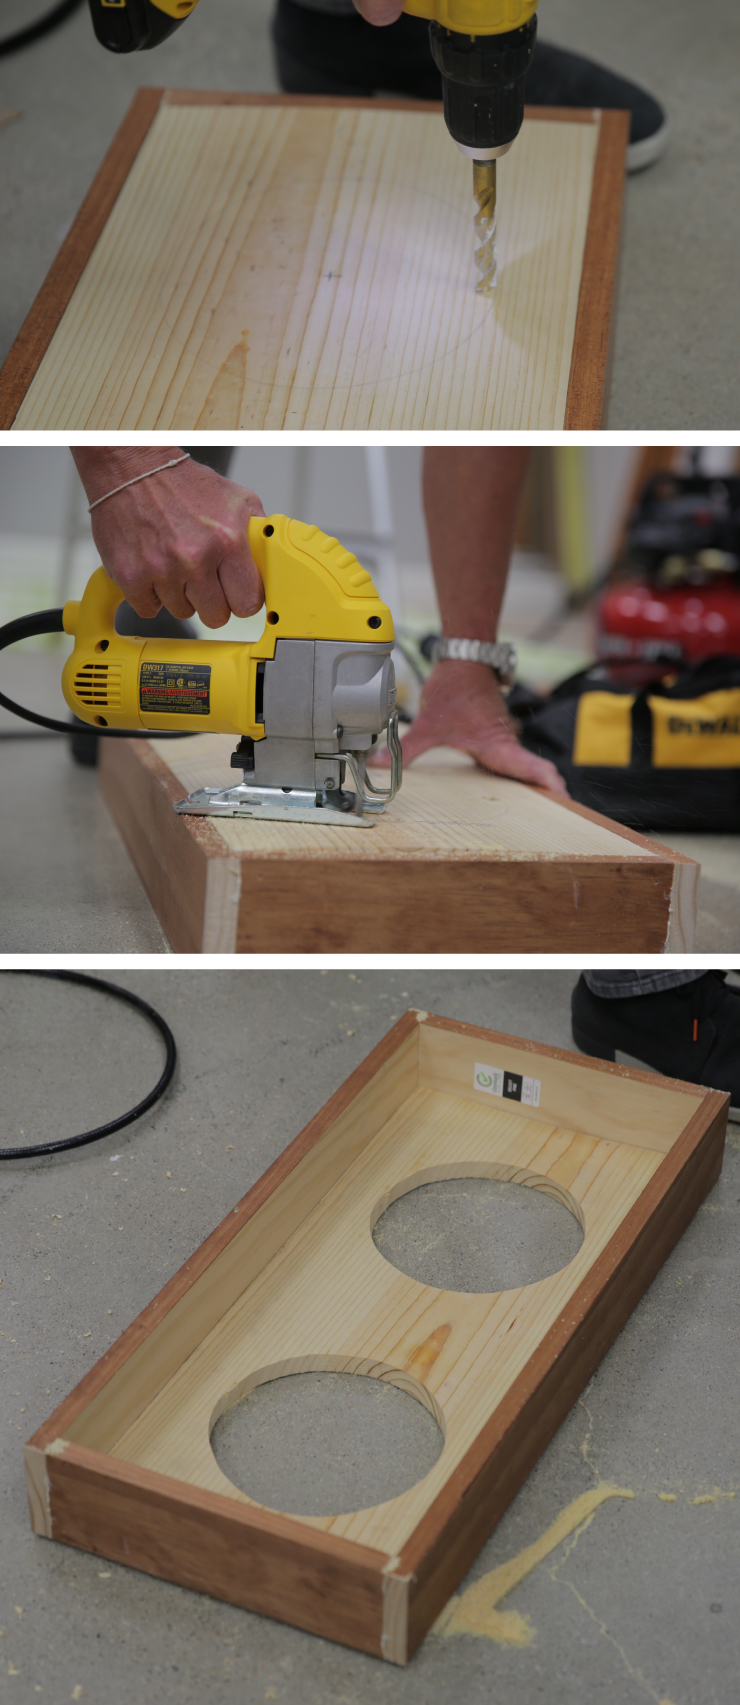 Drilling a hole in the board and cutting circles from the board.